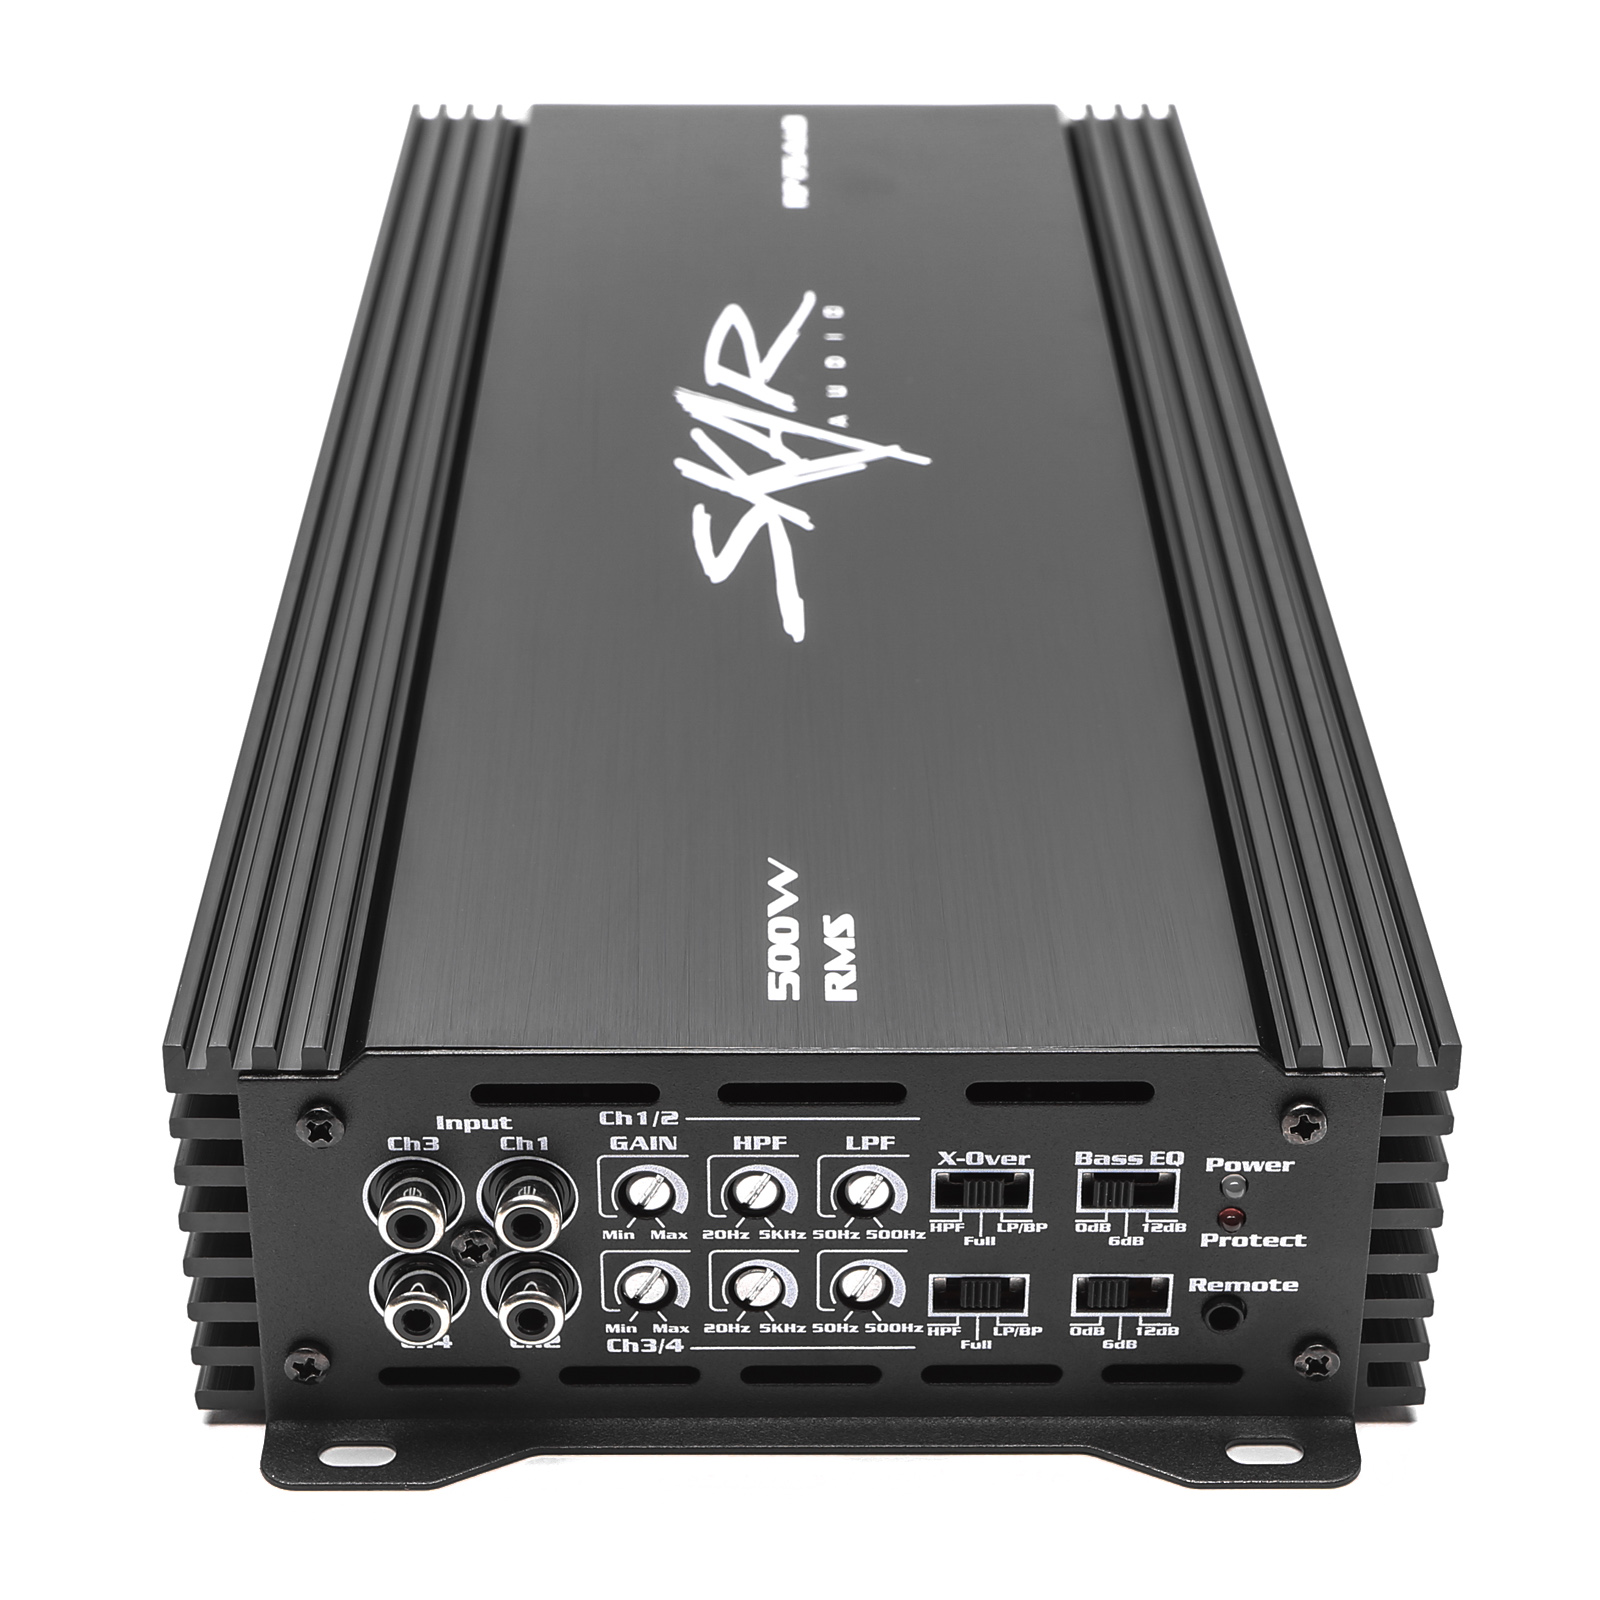 New Skar Audio Rp 754ab 500 Watt Rms Full Range Class A B 4 Channel Fosgate R250x4 250 4channel Car Amplifier Amp Wire Kit Please Click On The Images Below To Enlarge